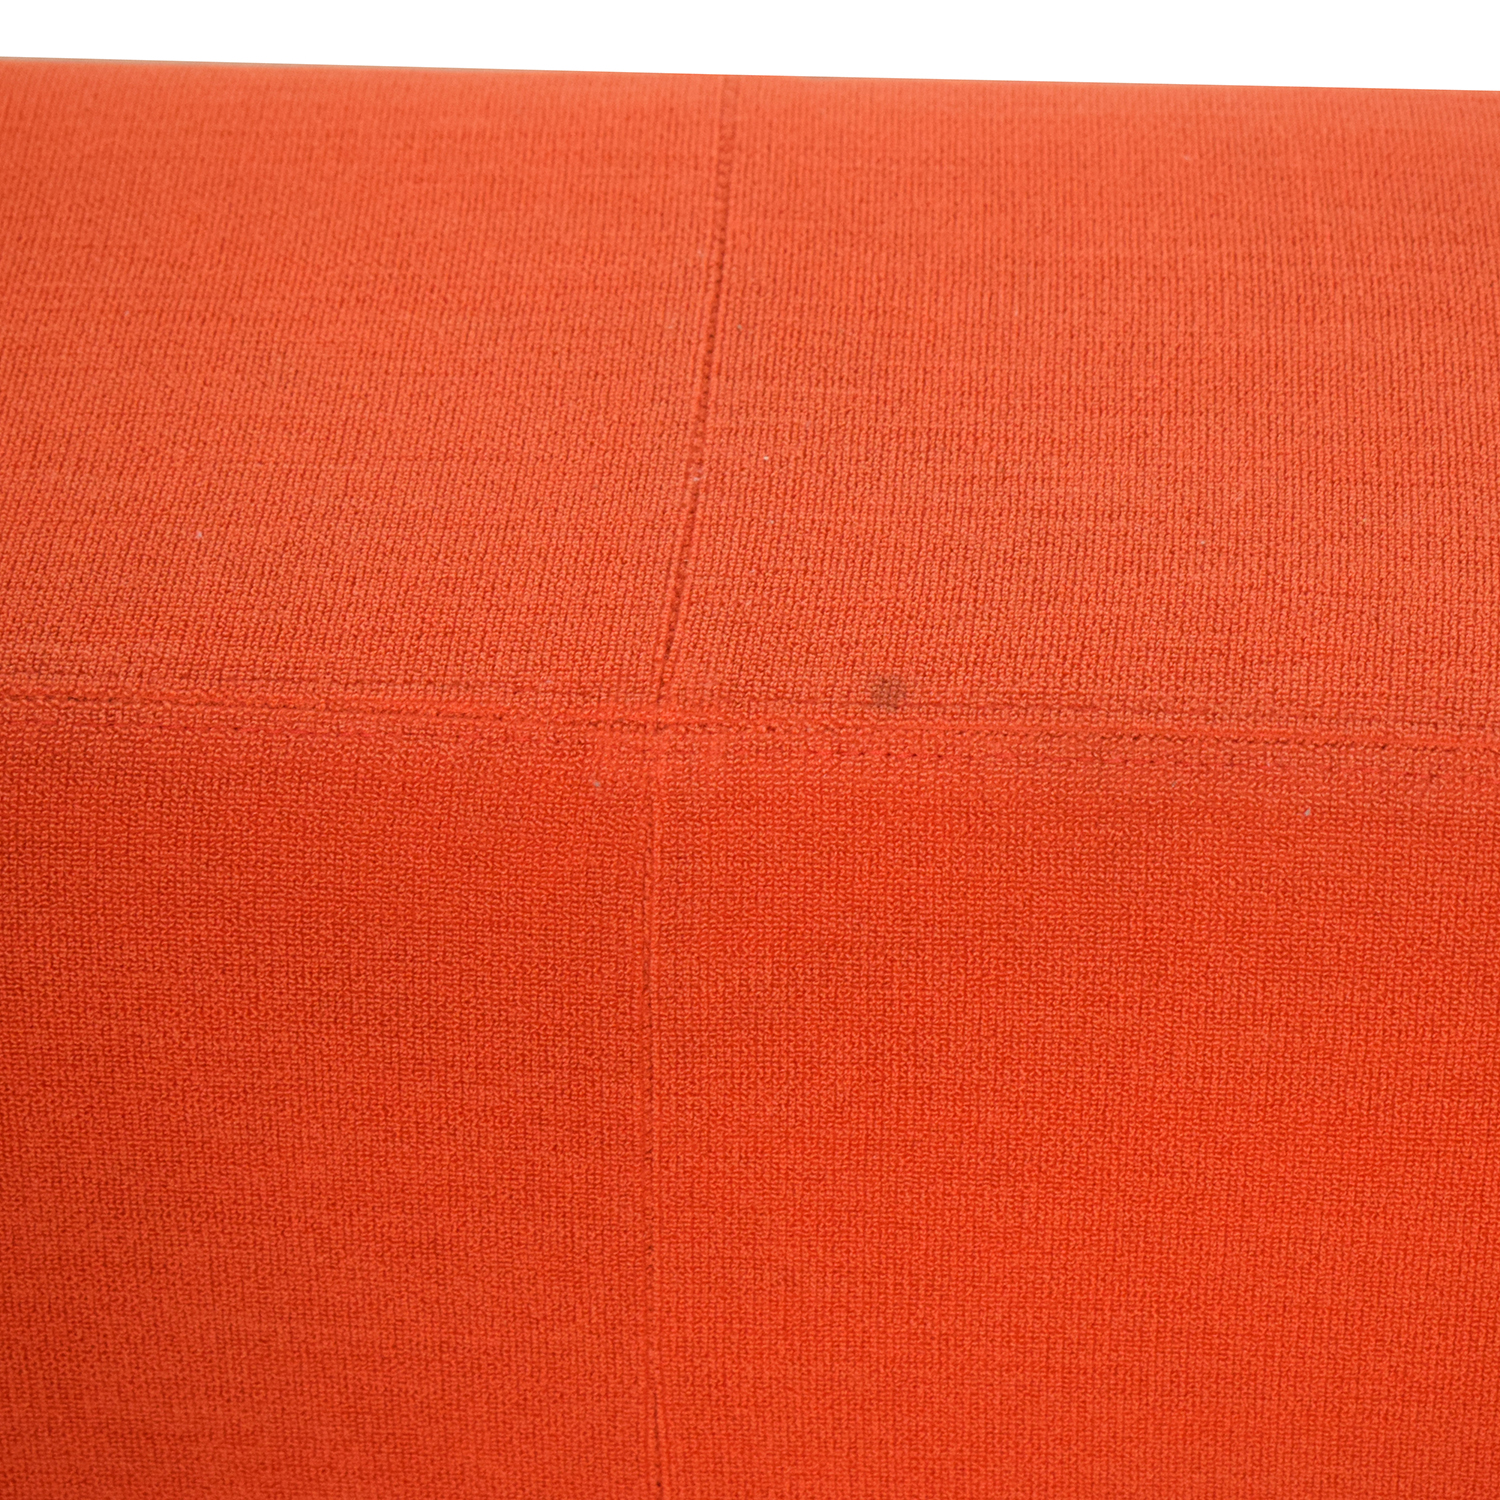 Ligne Roset Ligne Roset Orange Sleeper Sofa